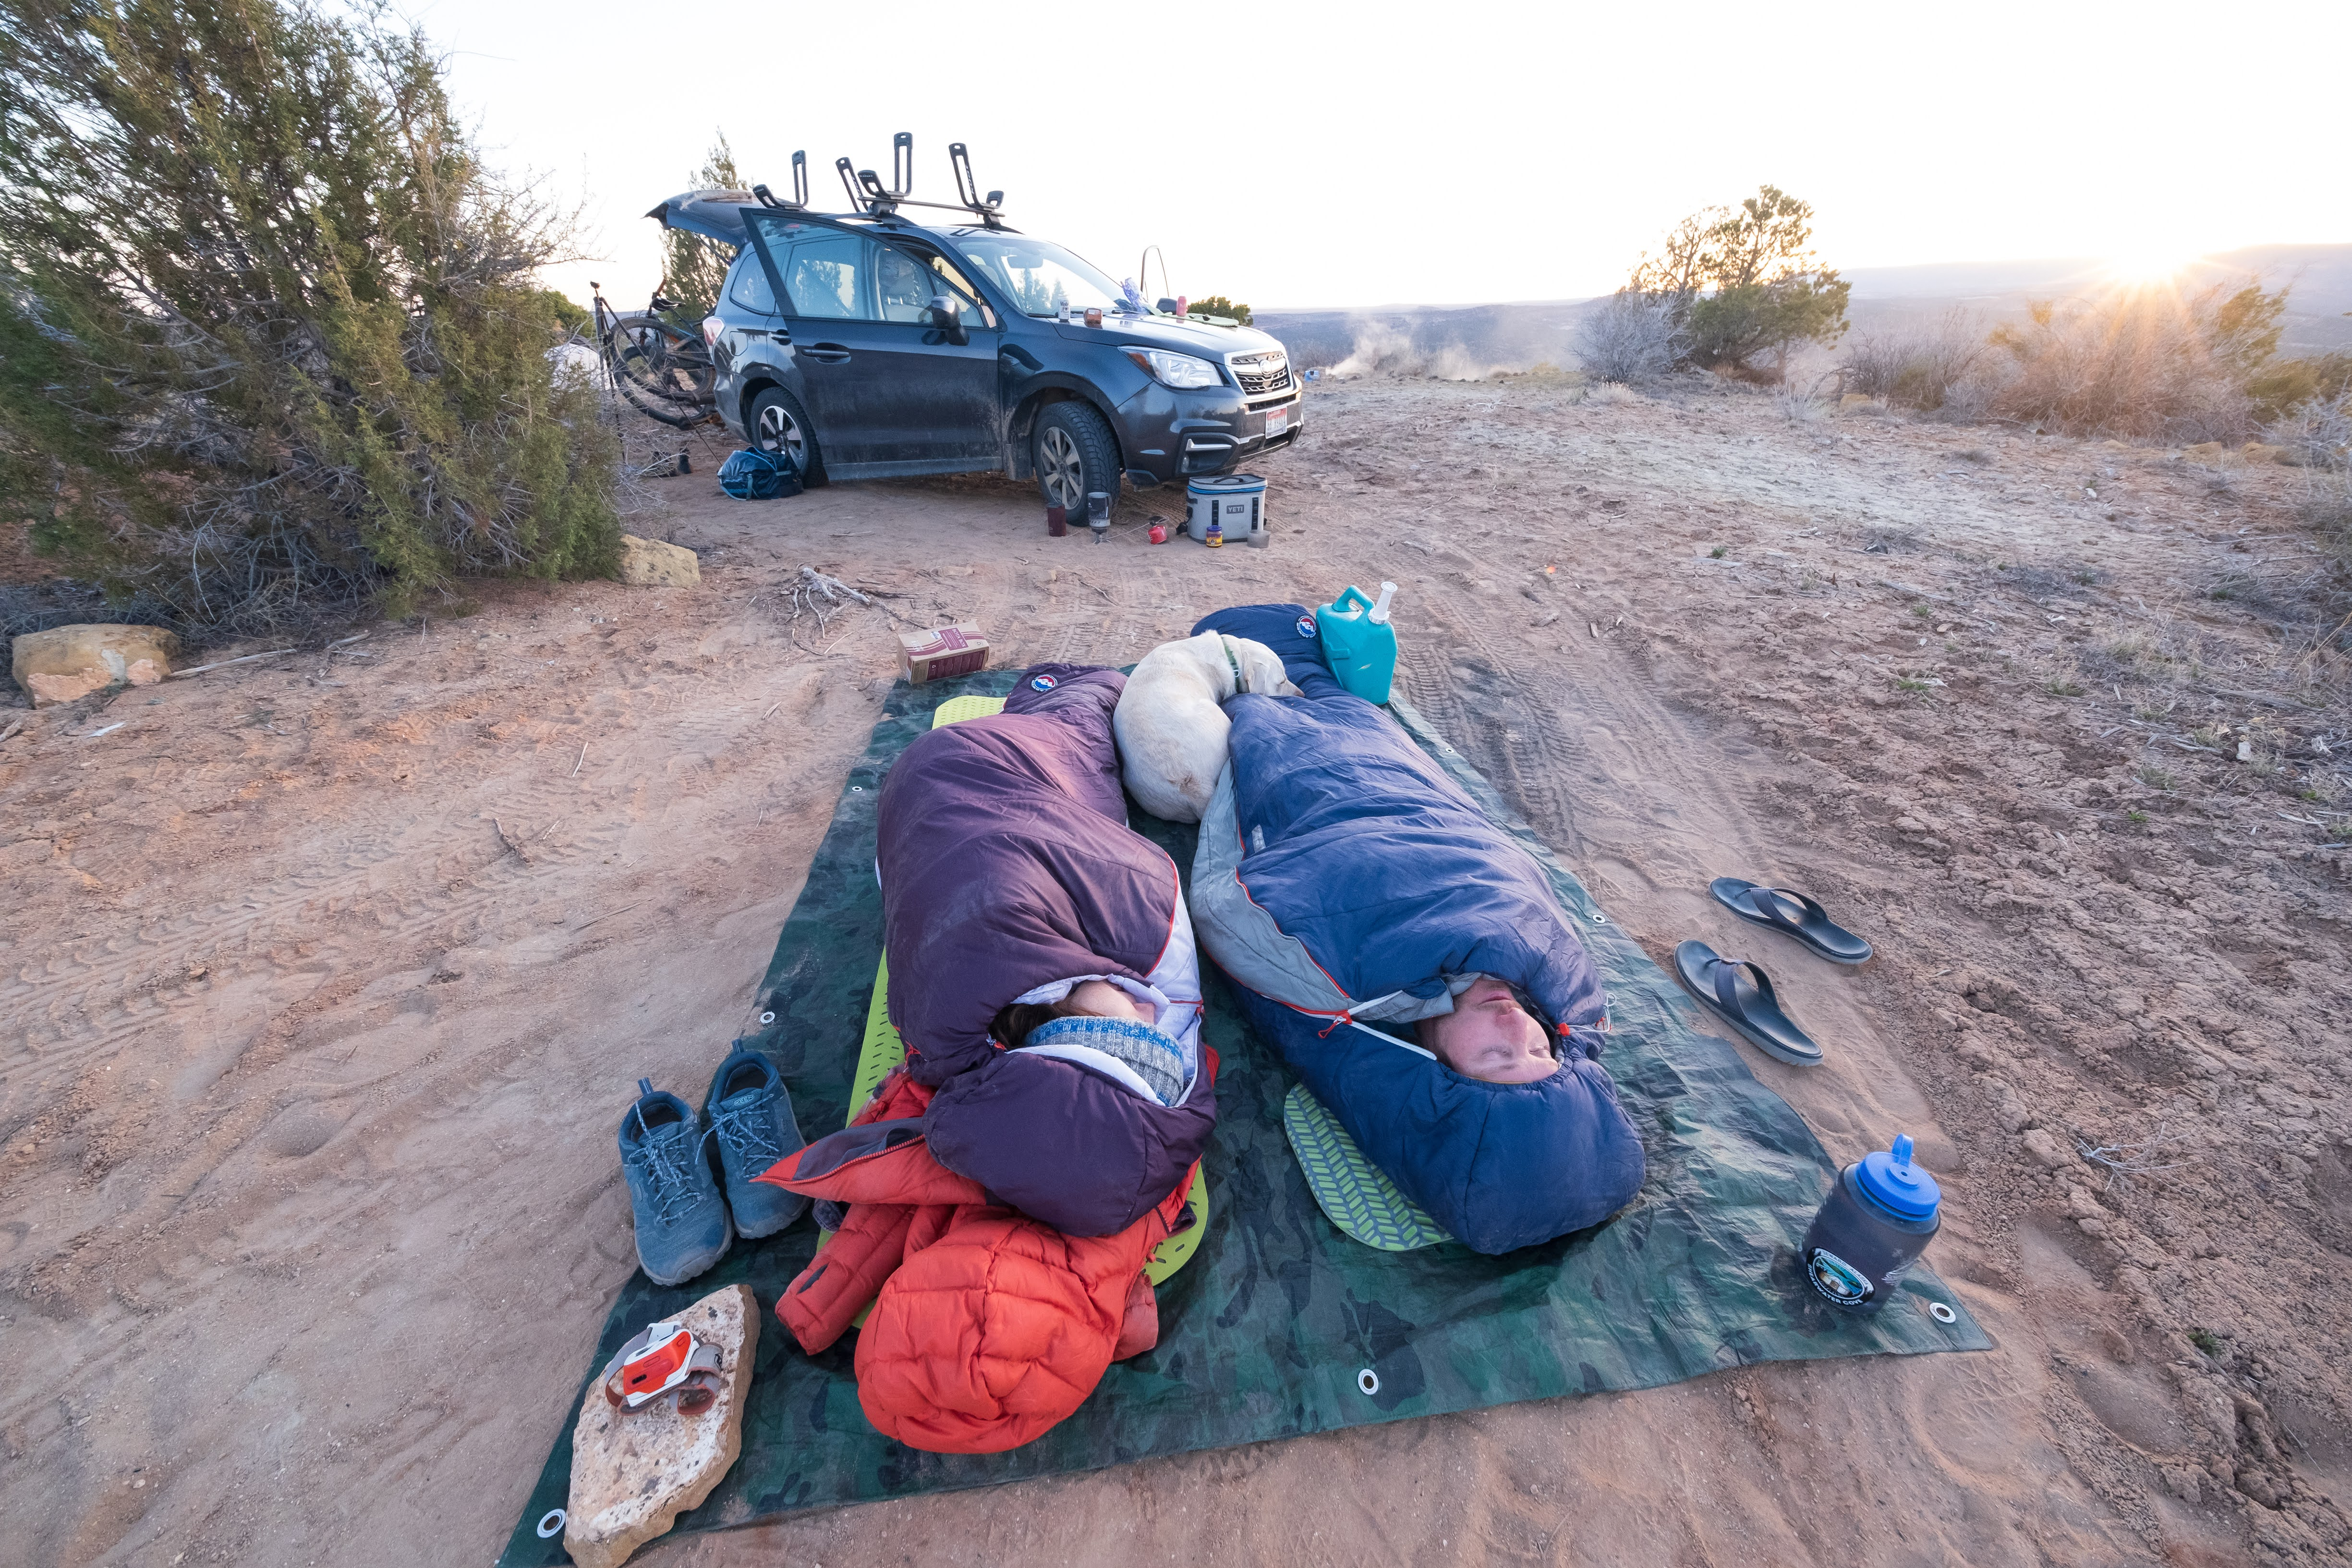 Big_Agnes_sleeping_bag